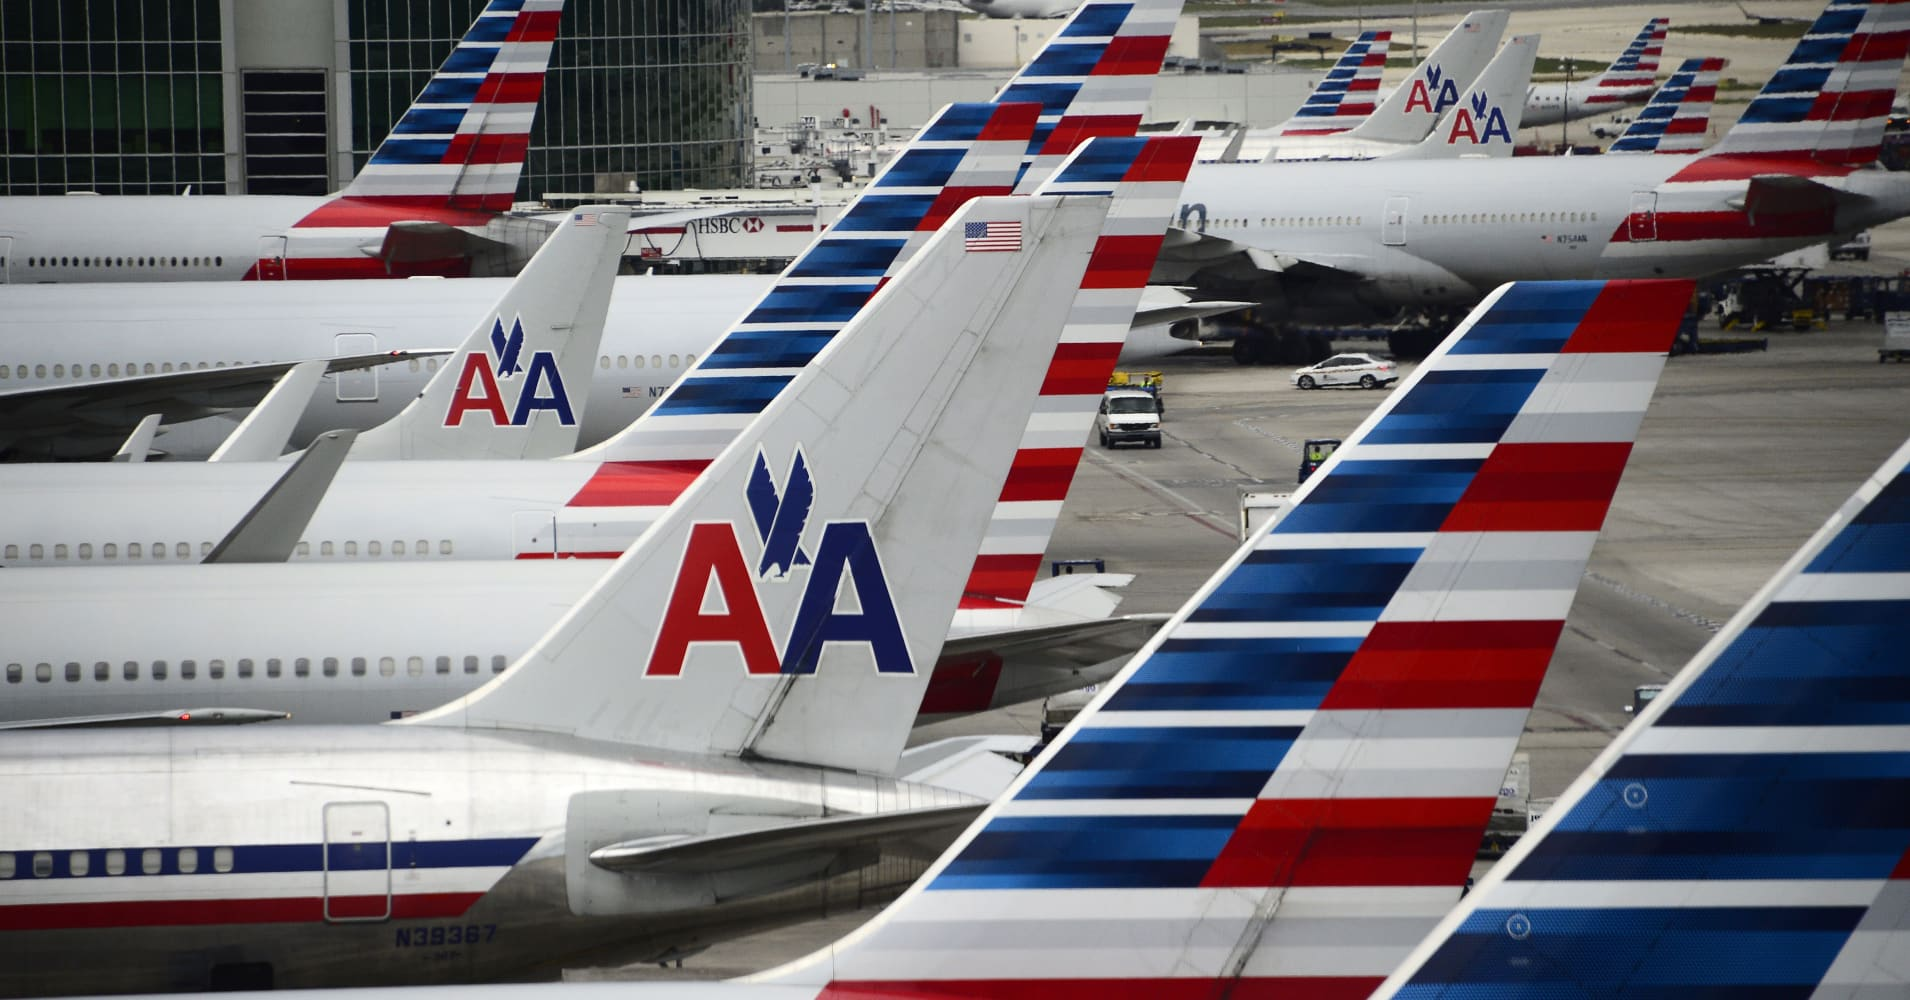 American Airlines launches Basic Economy class